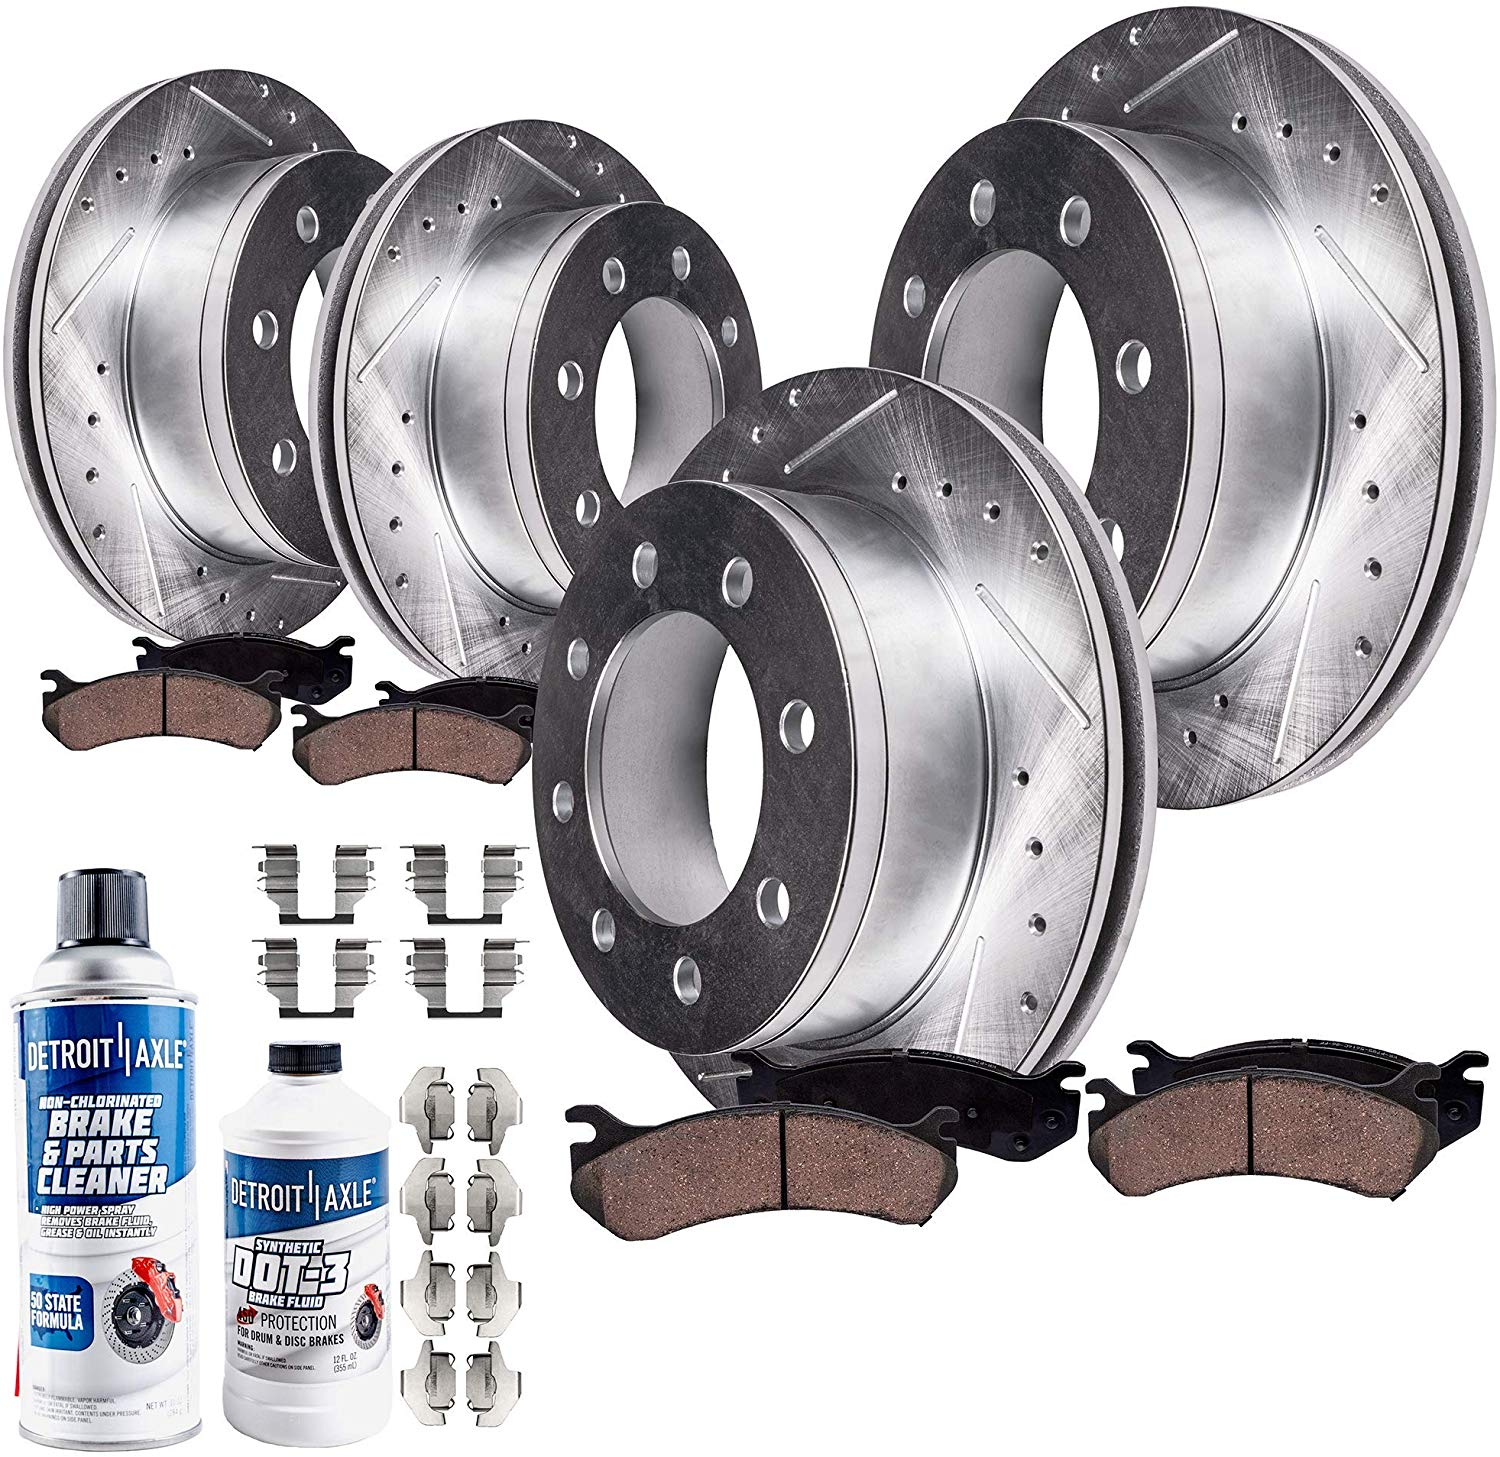 1999 2000 For GMC Chevrolet K3500 Front Disc Brake Rotors and Pads w//8Lugs